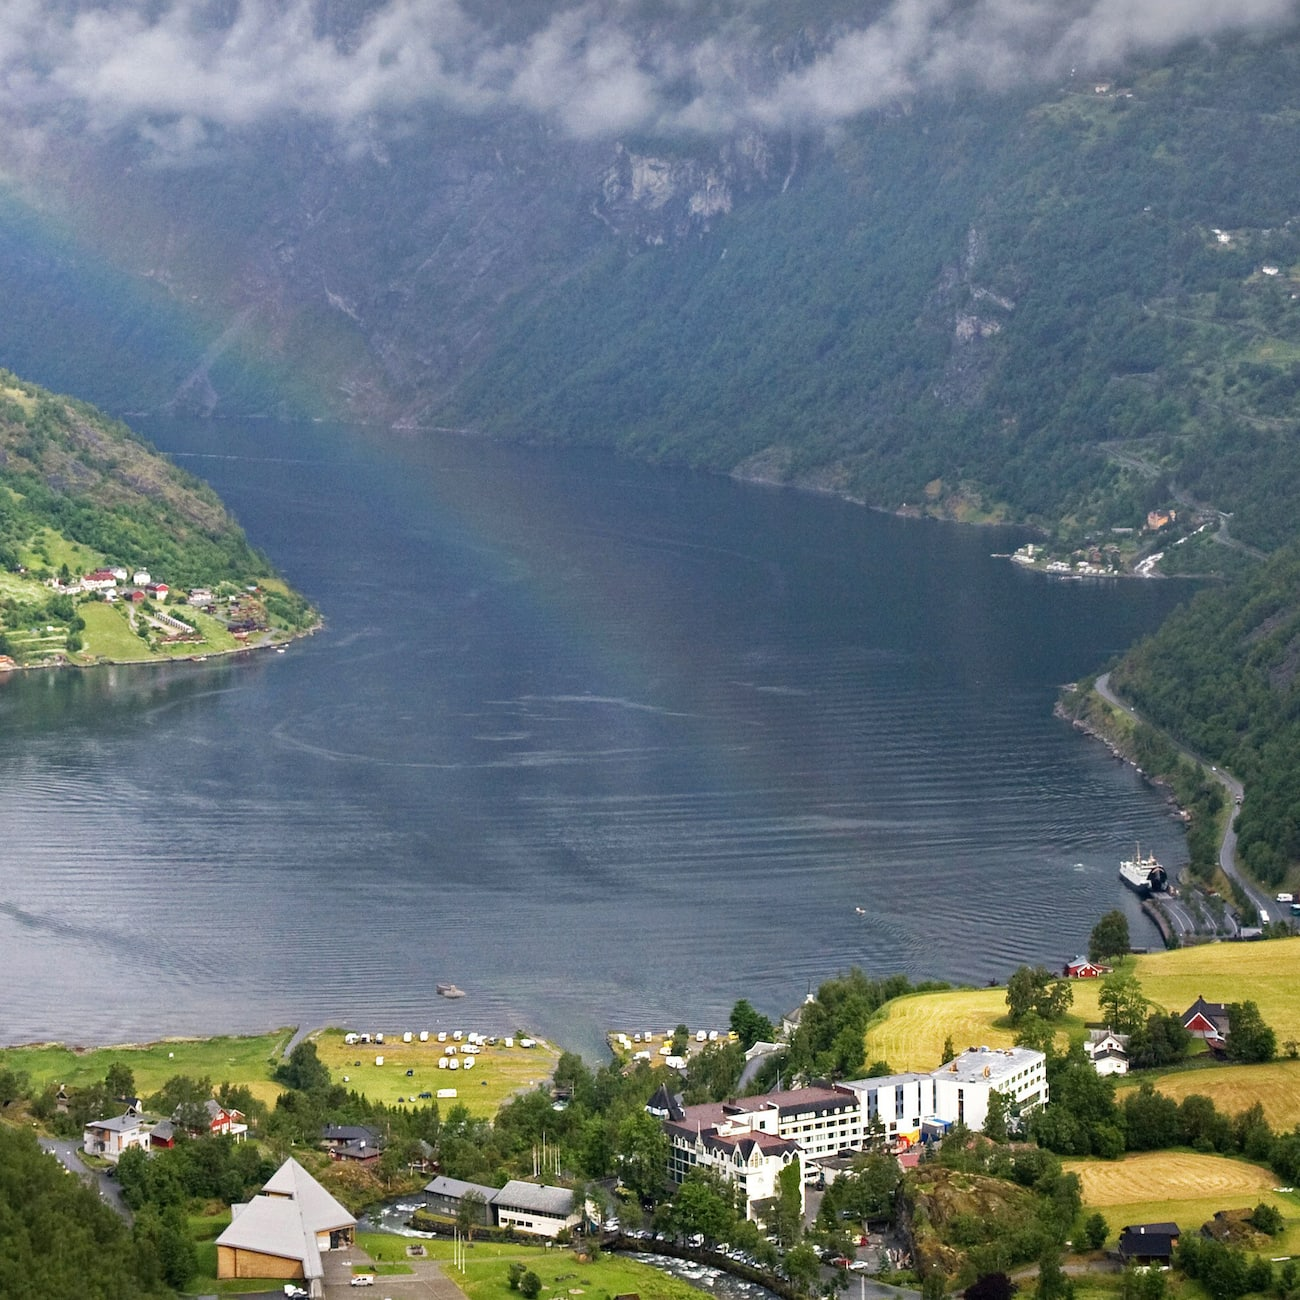 A fjord surrounded by shrub covered mountains